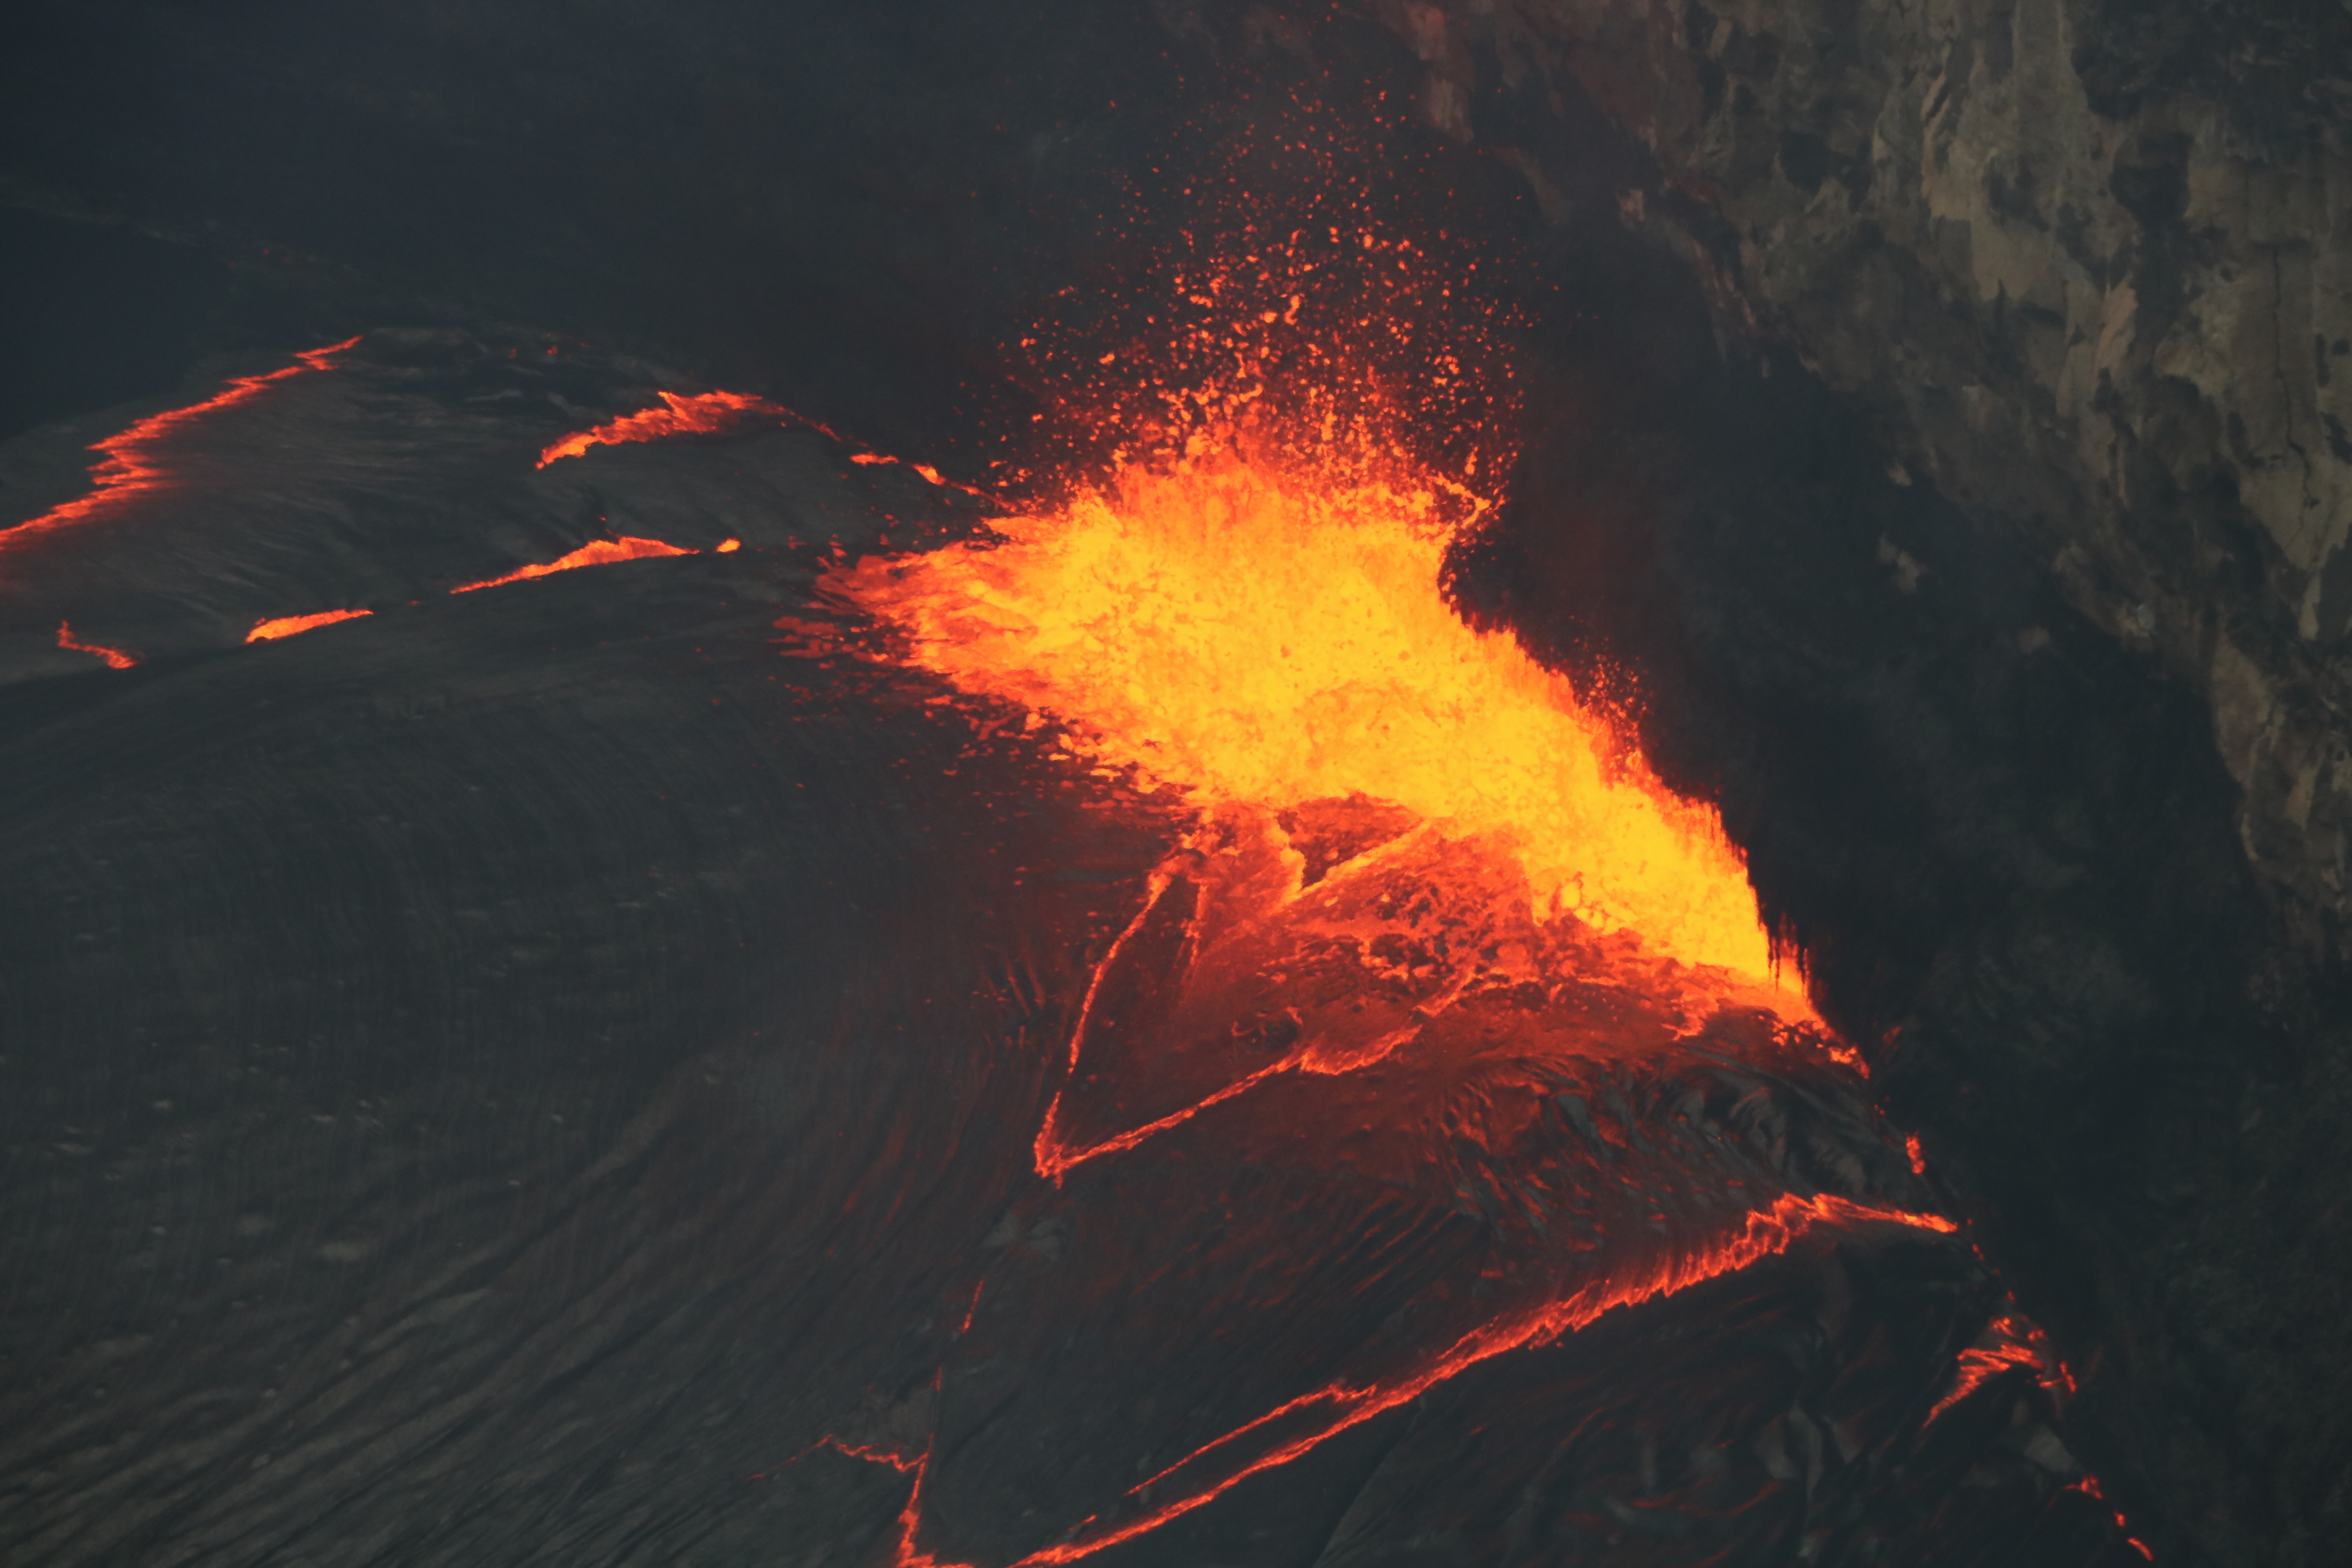 Usgs Volcano Hazards Program Hvo Kilauea